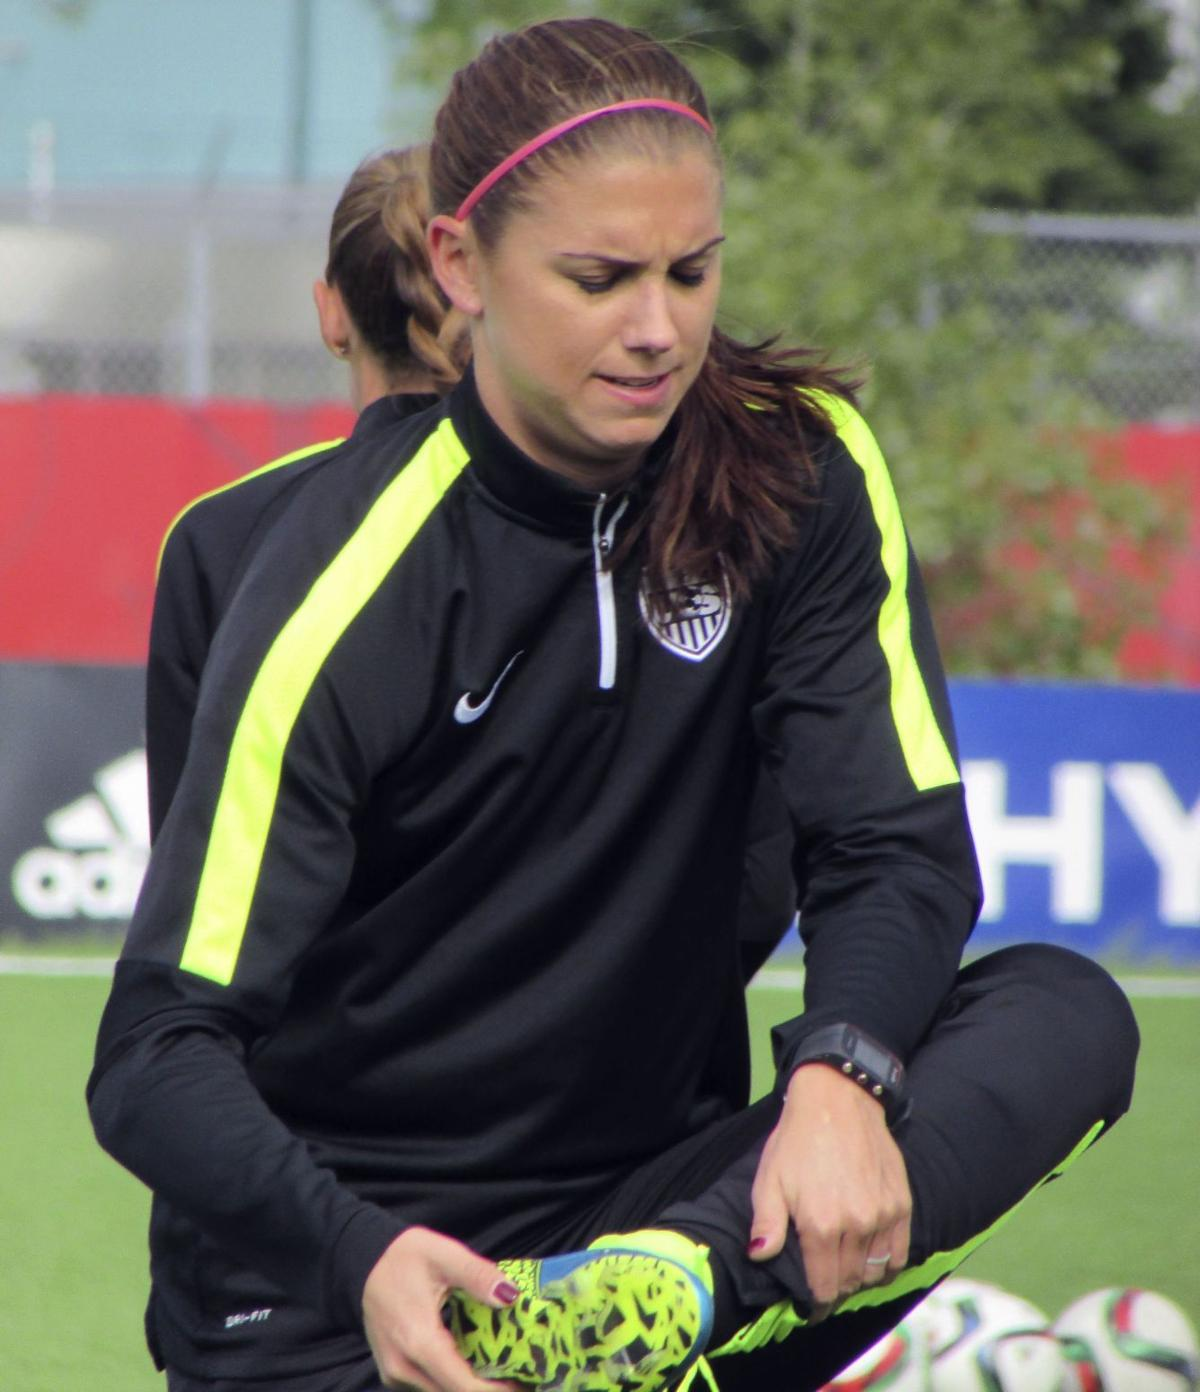 Women at risk: ACL tears common among U.S. National Team players